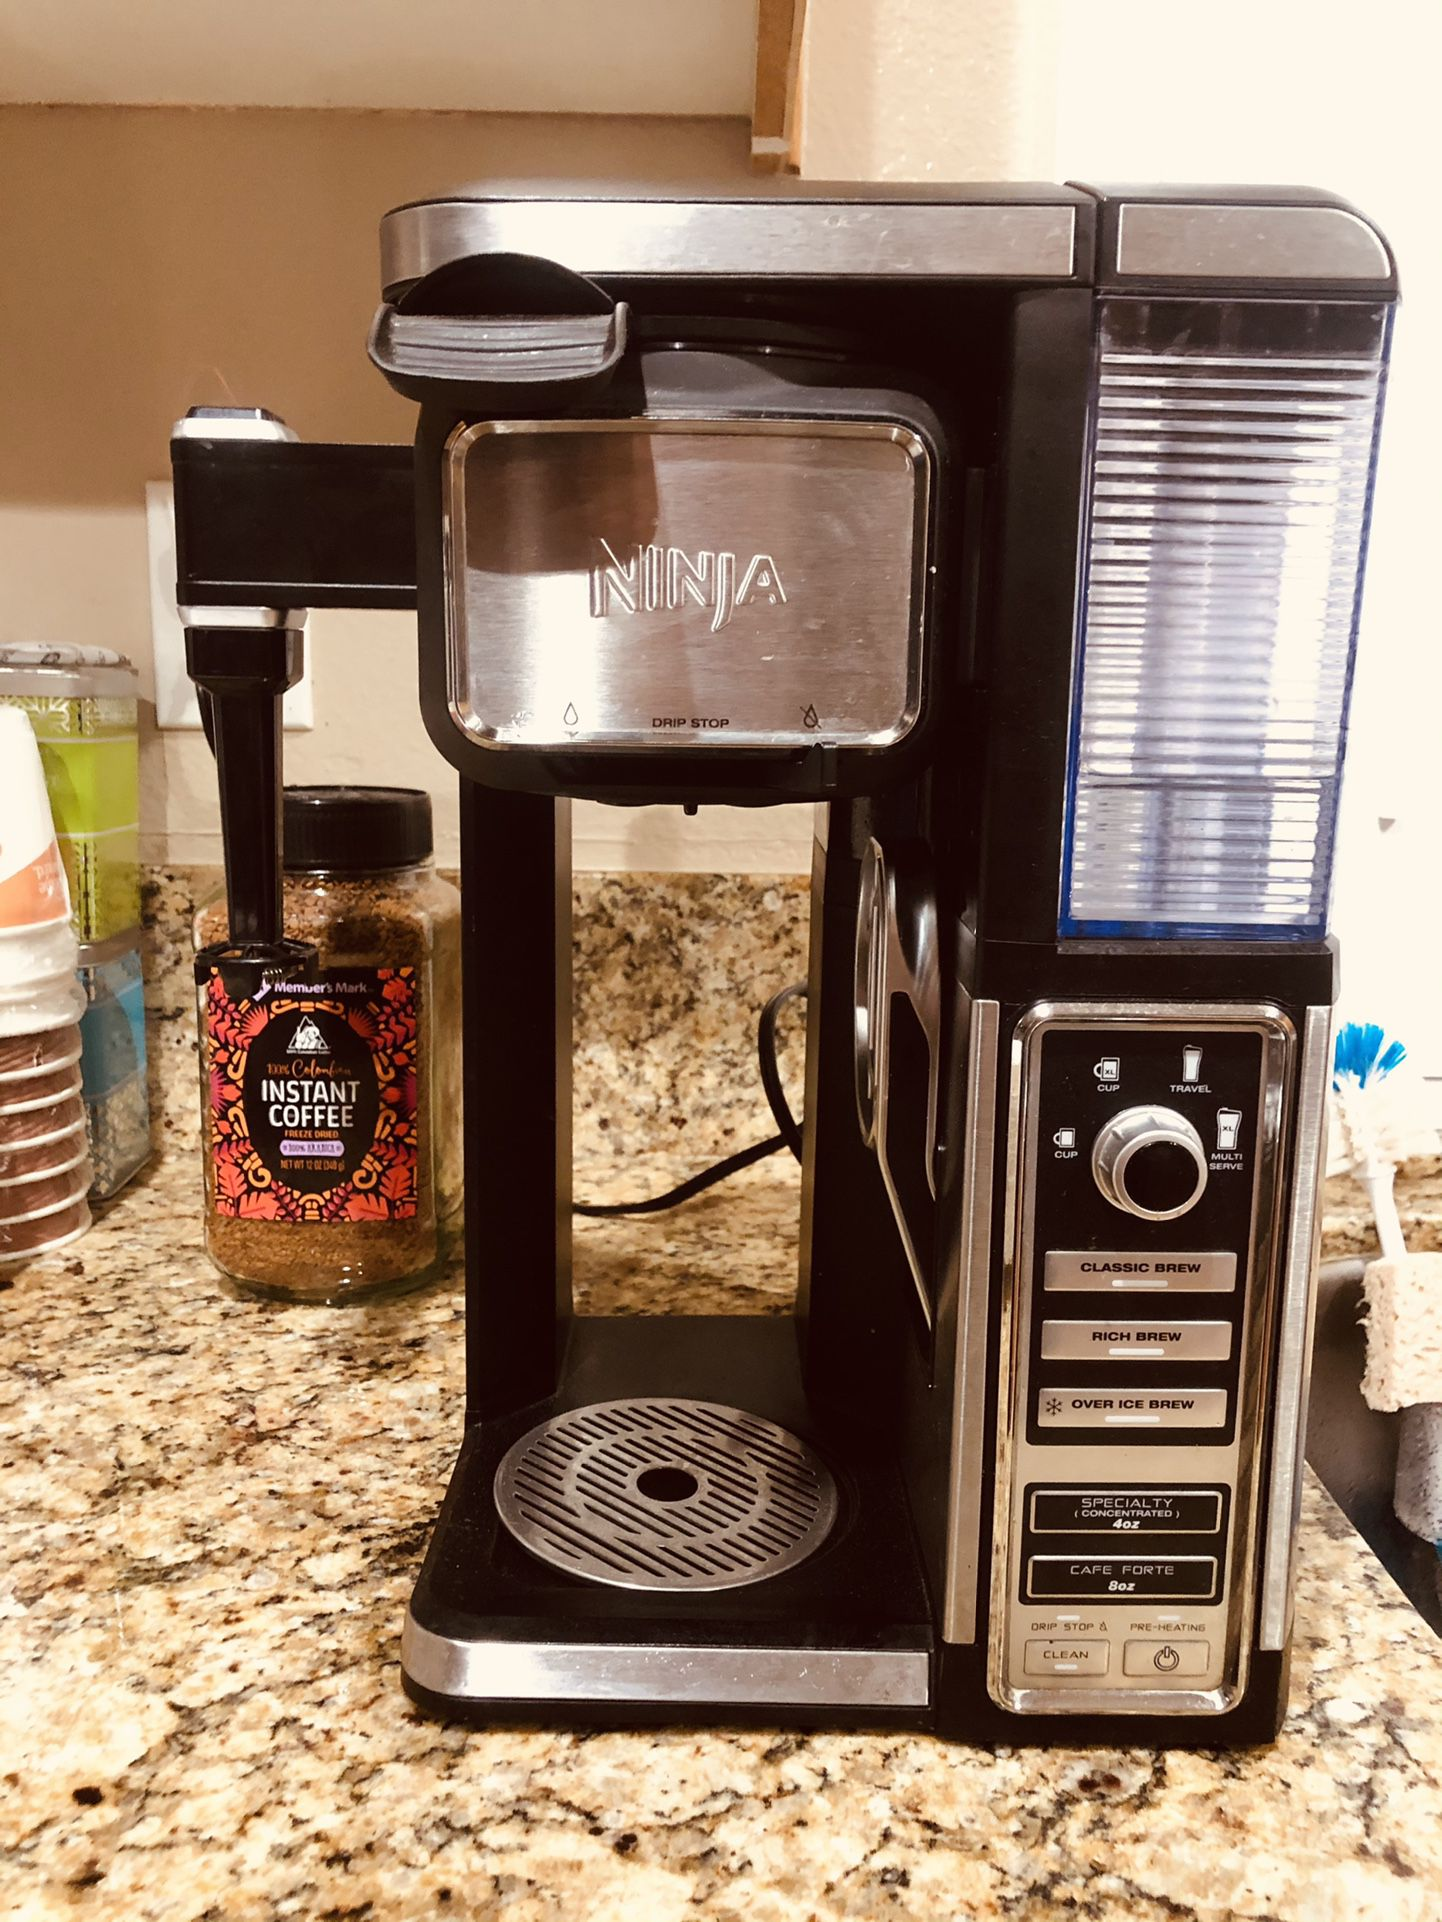 NINJA HOT AND ICED COFFEE MAKER WITH FROTHER